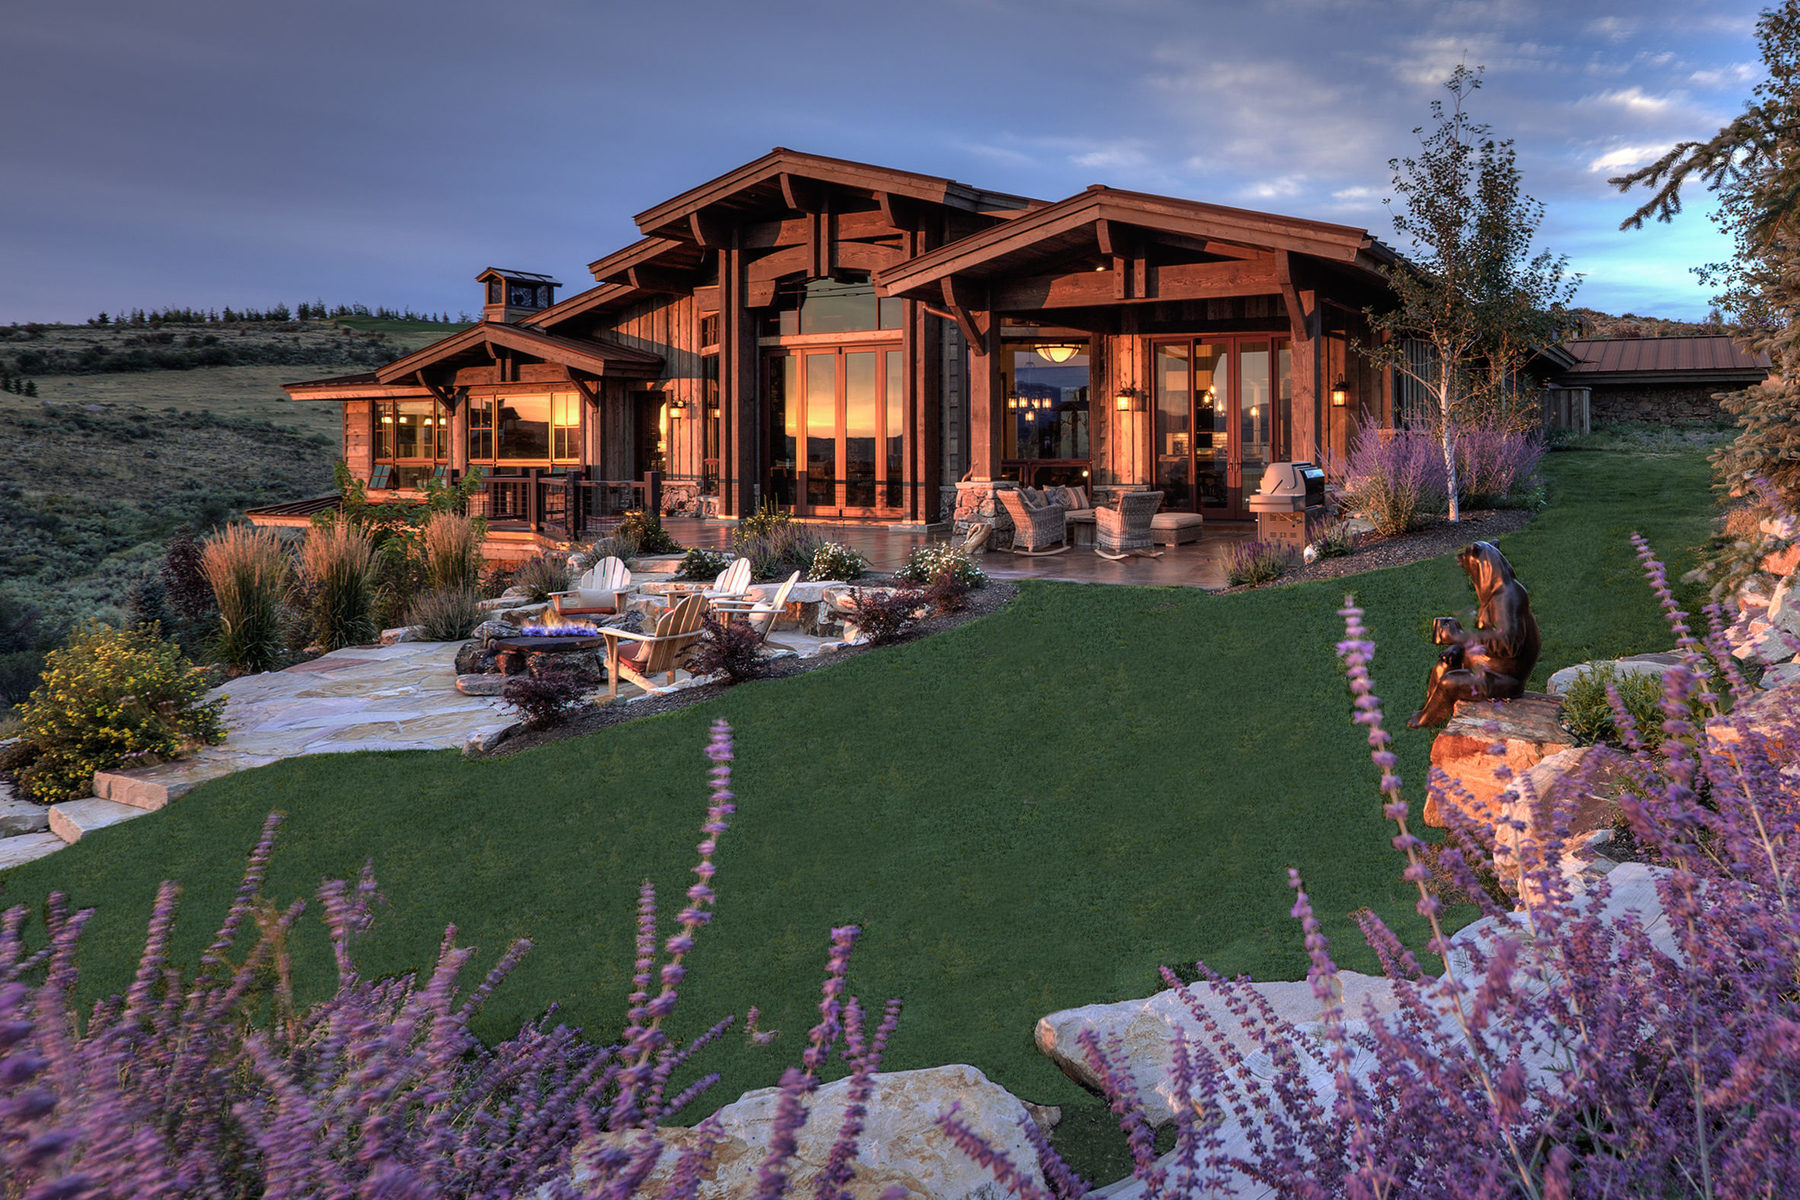 Maison unifamiliale pour l Vente à This Is The Wow Home On The Wow Lot In All Of Promontory 3347 E Pete Dye Draw Park City, Utah, 84098 États-Unis